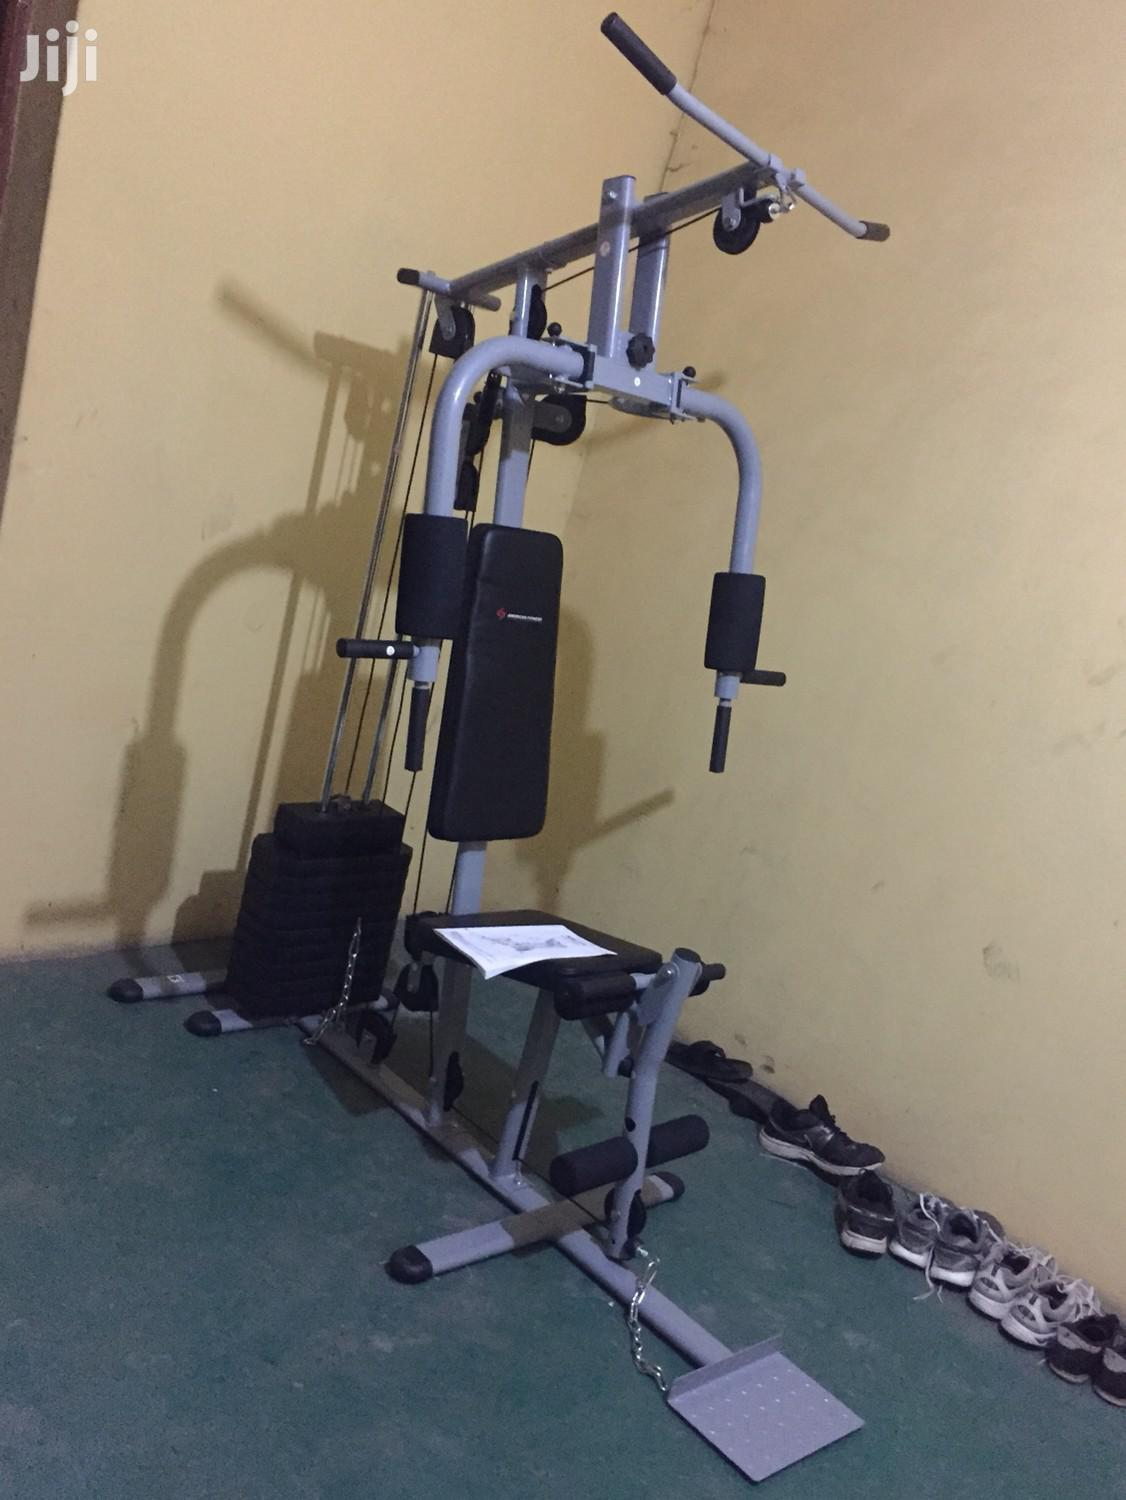 Imported Brand New One Station Multi Home GYM